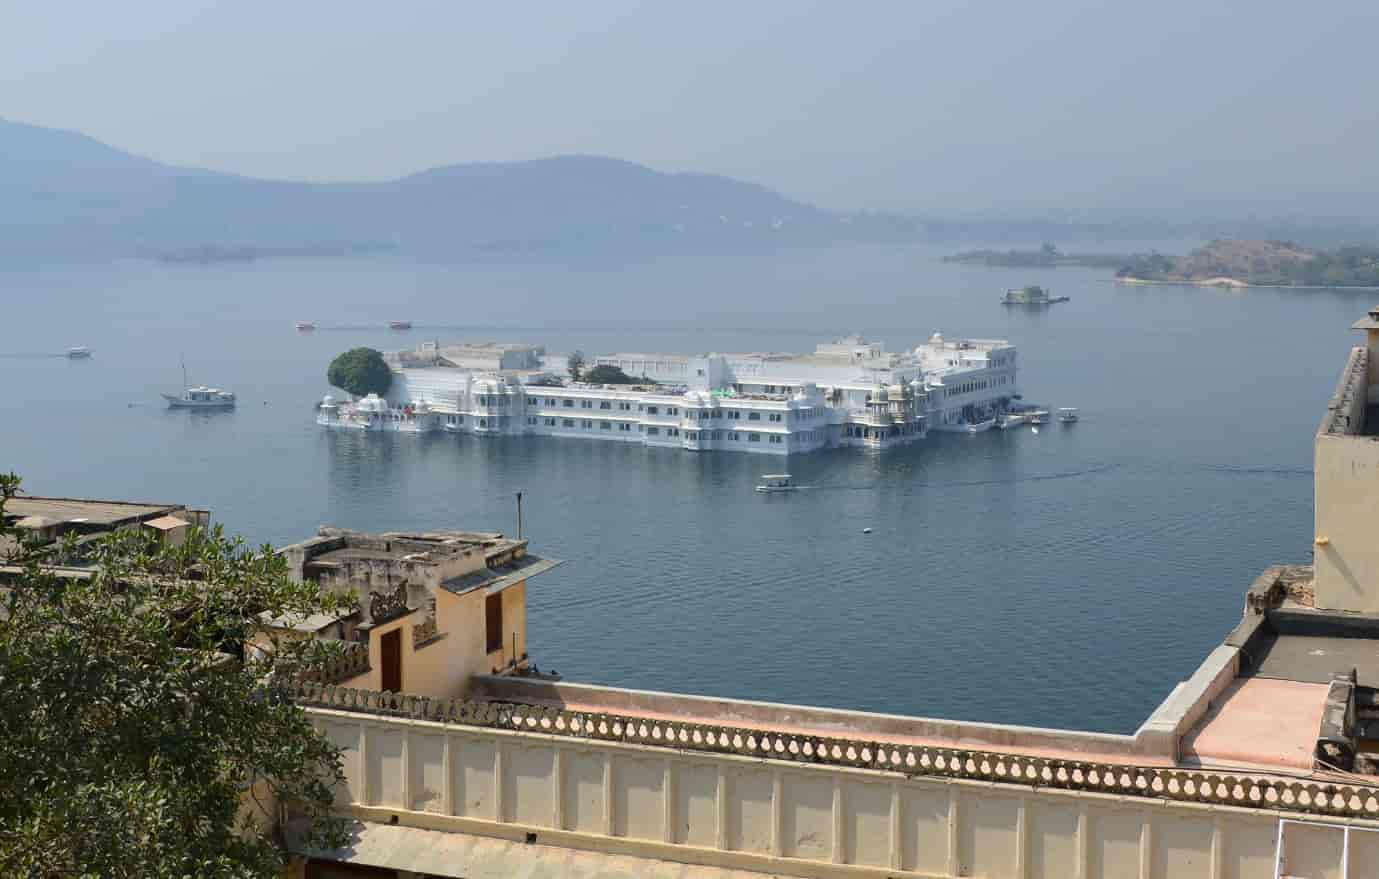 Pichola-Lake-udaipur-india